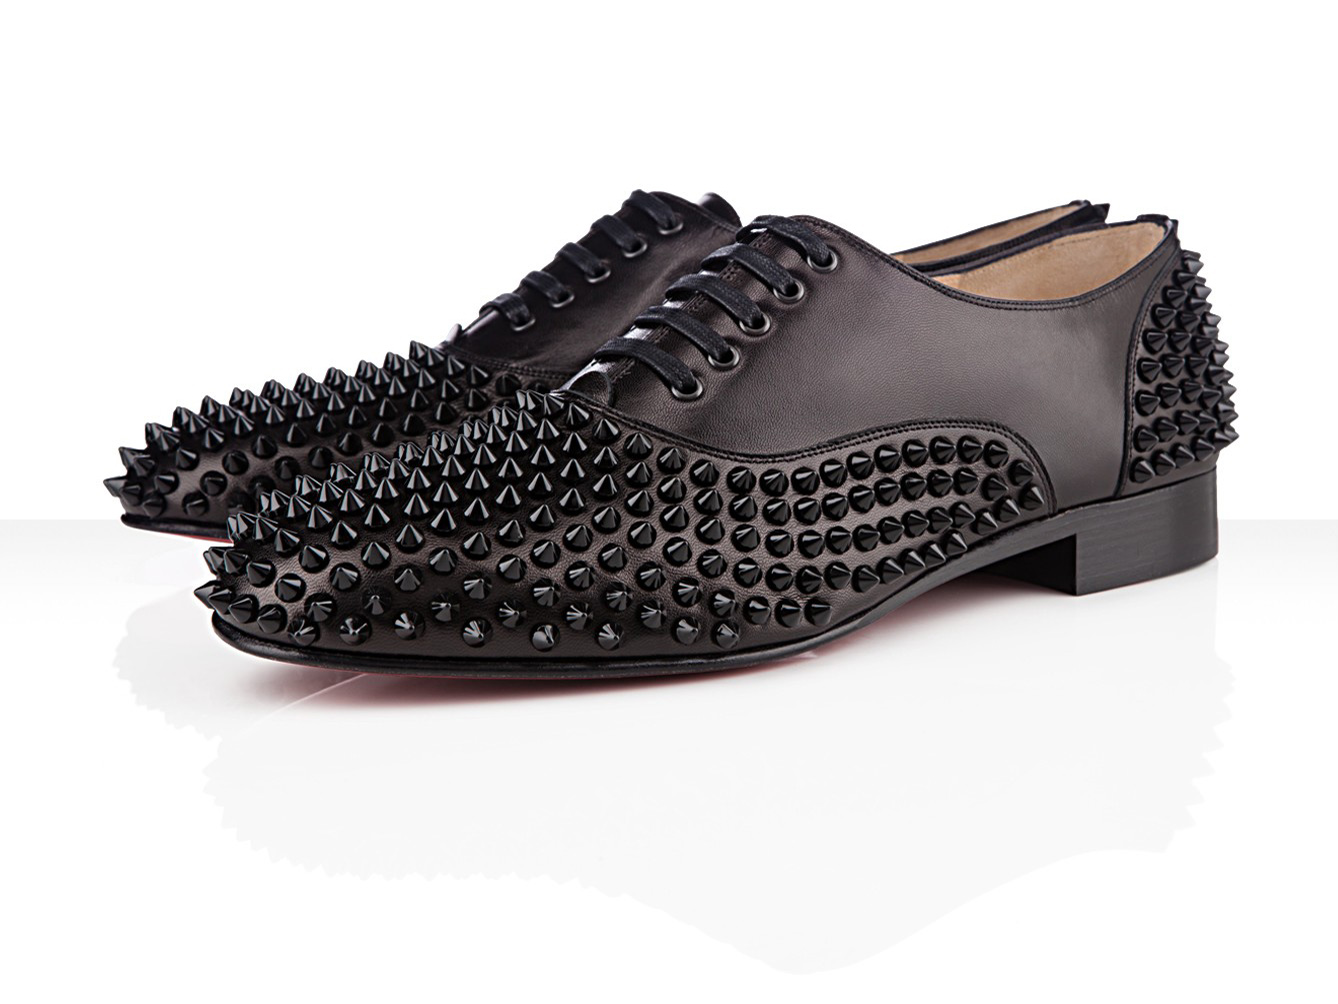 60d7527c18d Christian Louboutin Fall Winter 2012 Rollerboy Patent Black Spikes –  1395.  Familiar much  This version has been repeated in full black but has patent  ...